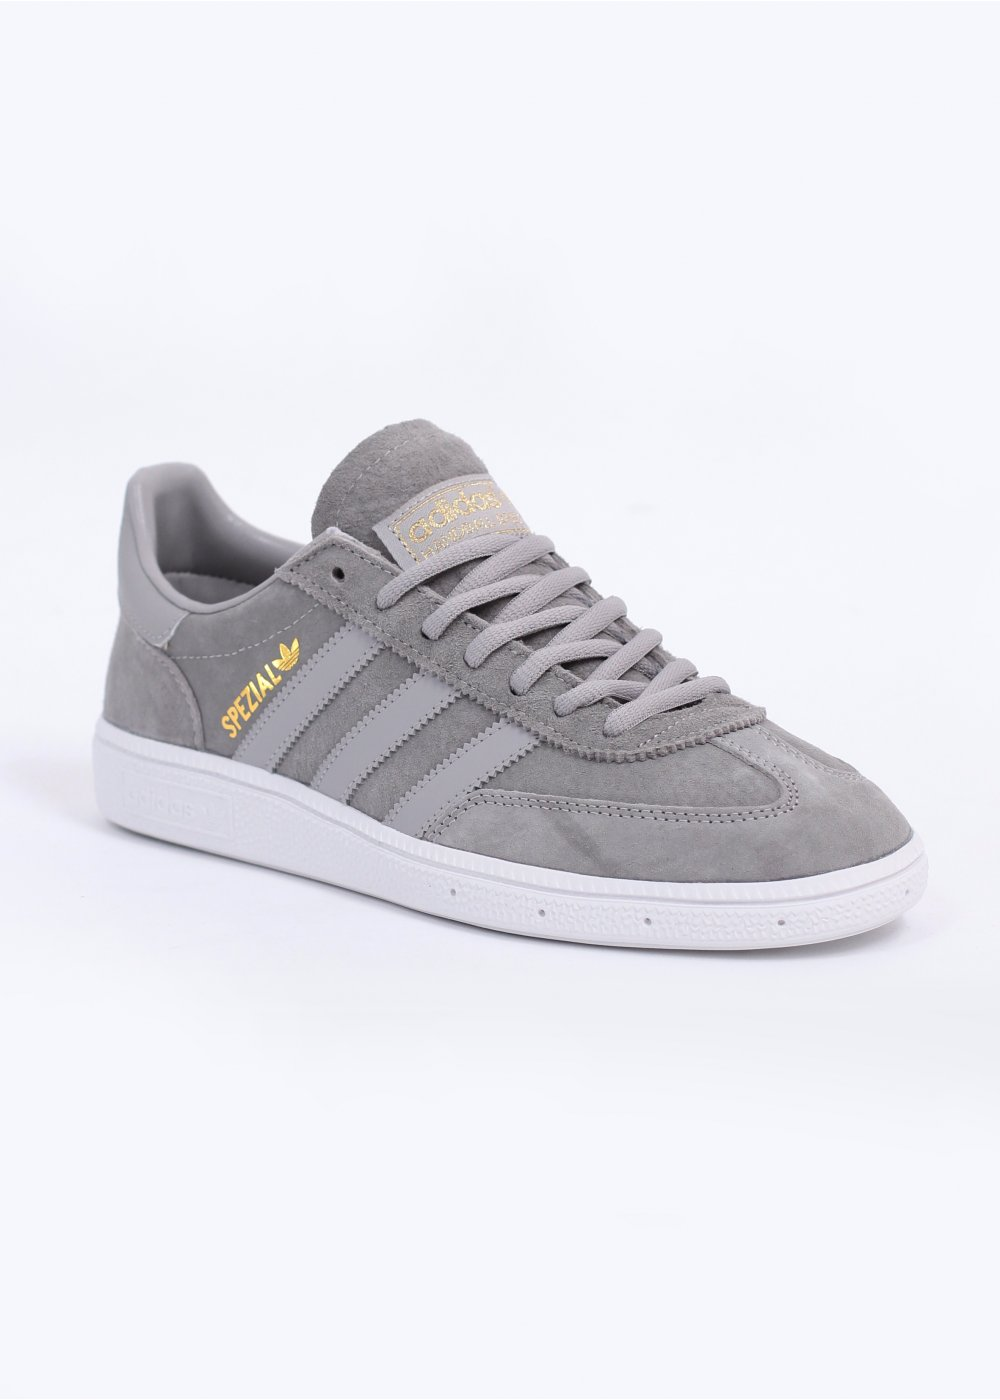 Adidas Originals Originals Top Ten Low Sneaker In Black: Adidas Originals Spezial Trainers